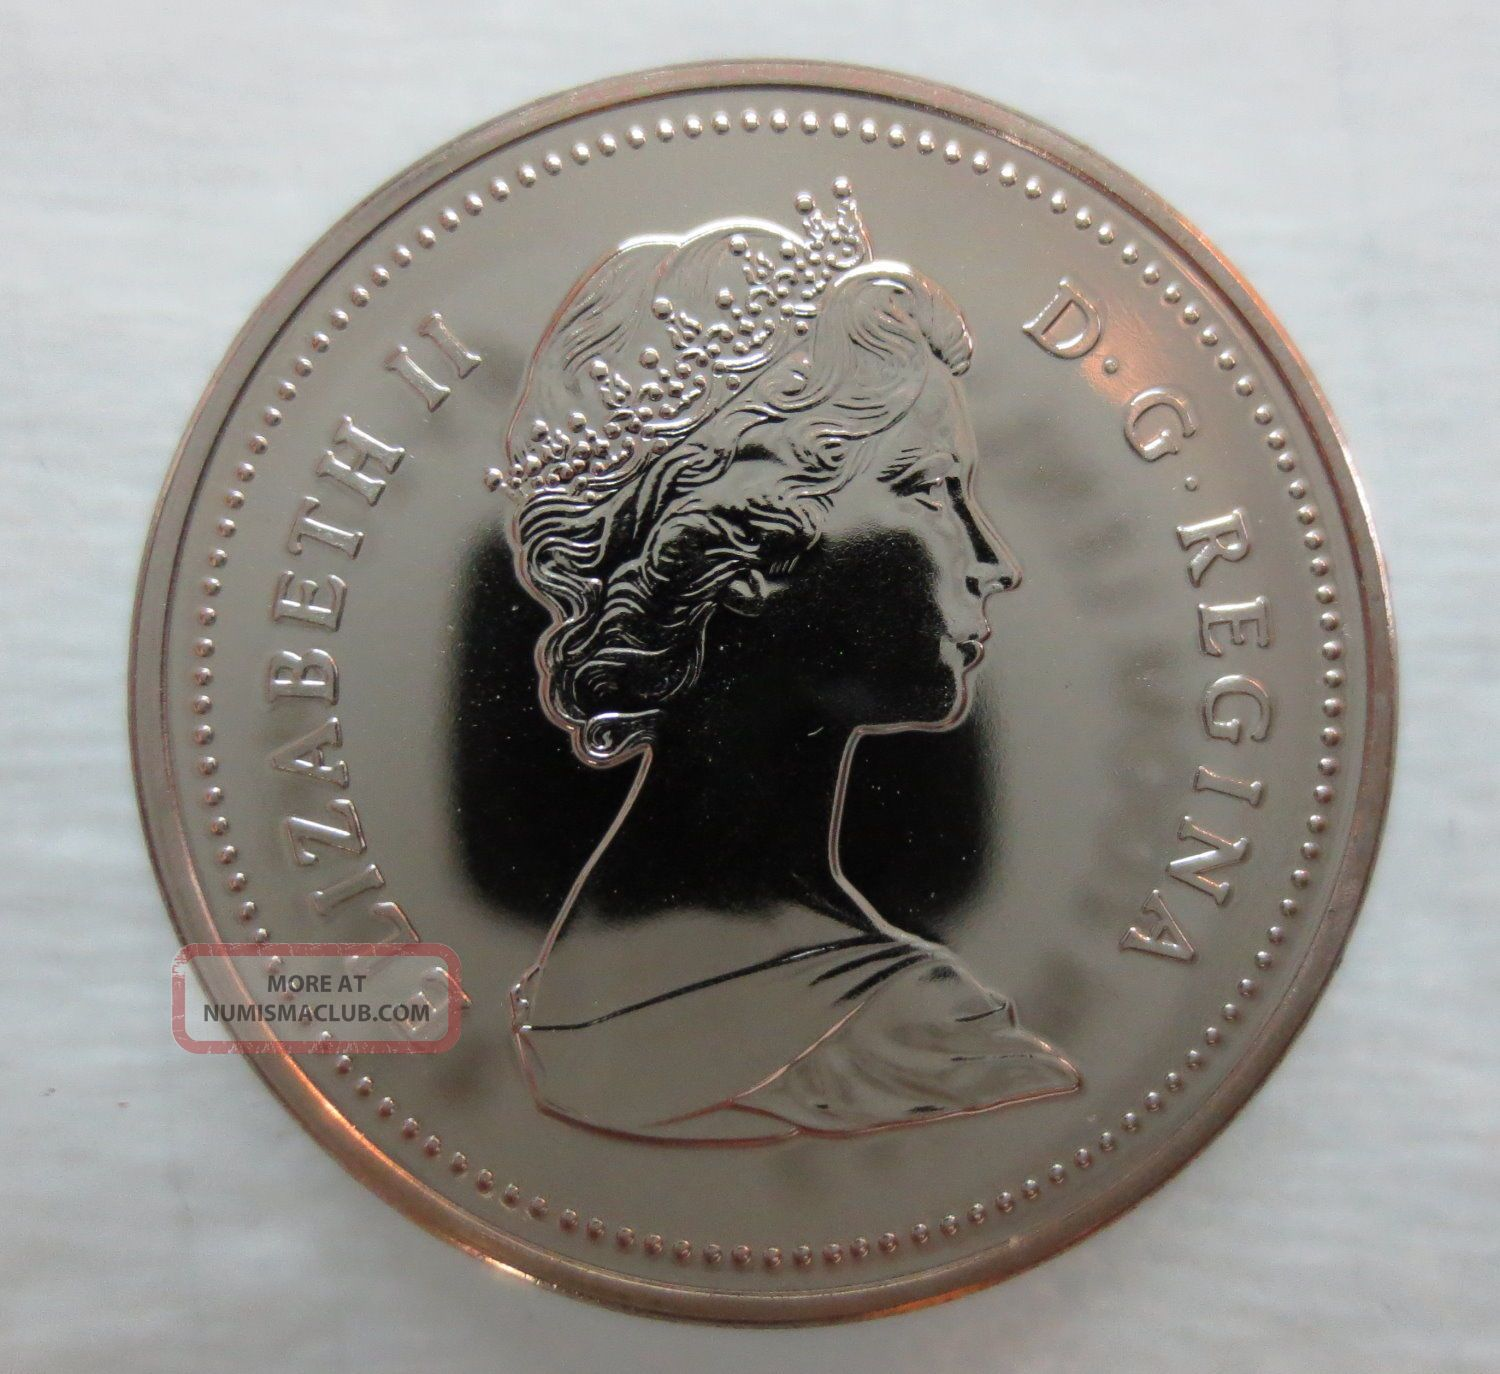 1988 Canada 5 Cents Proof Like Coin